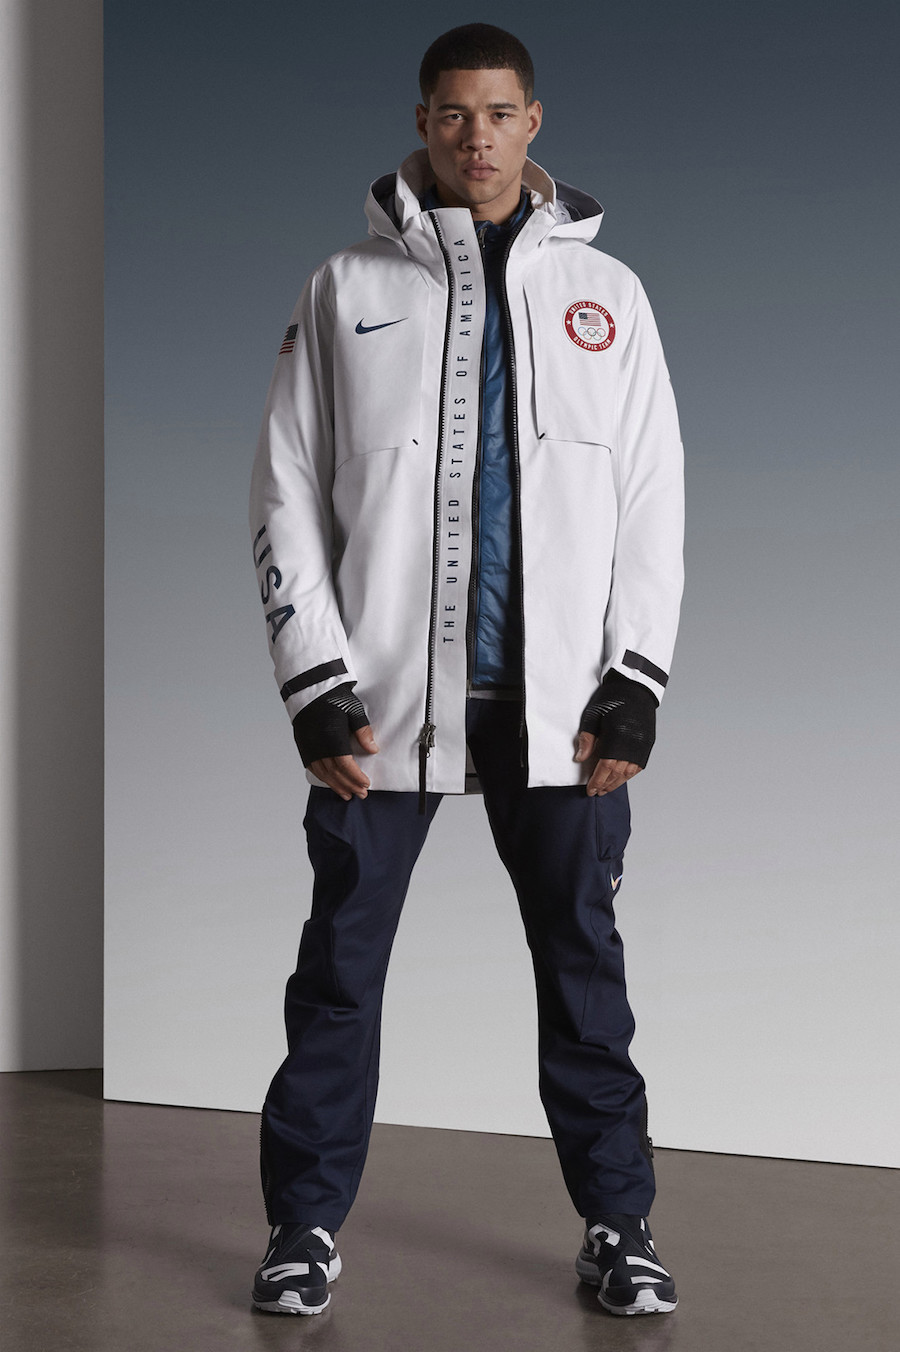 Nike Team USA's Model Stand Collection 2018